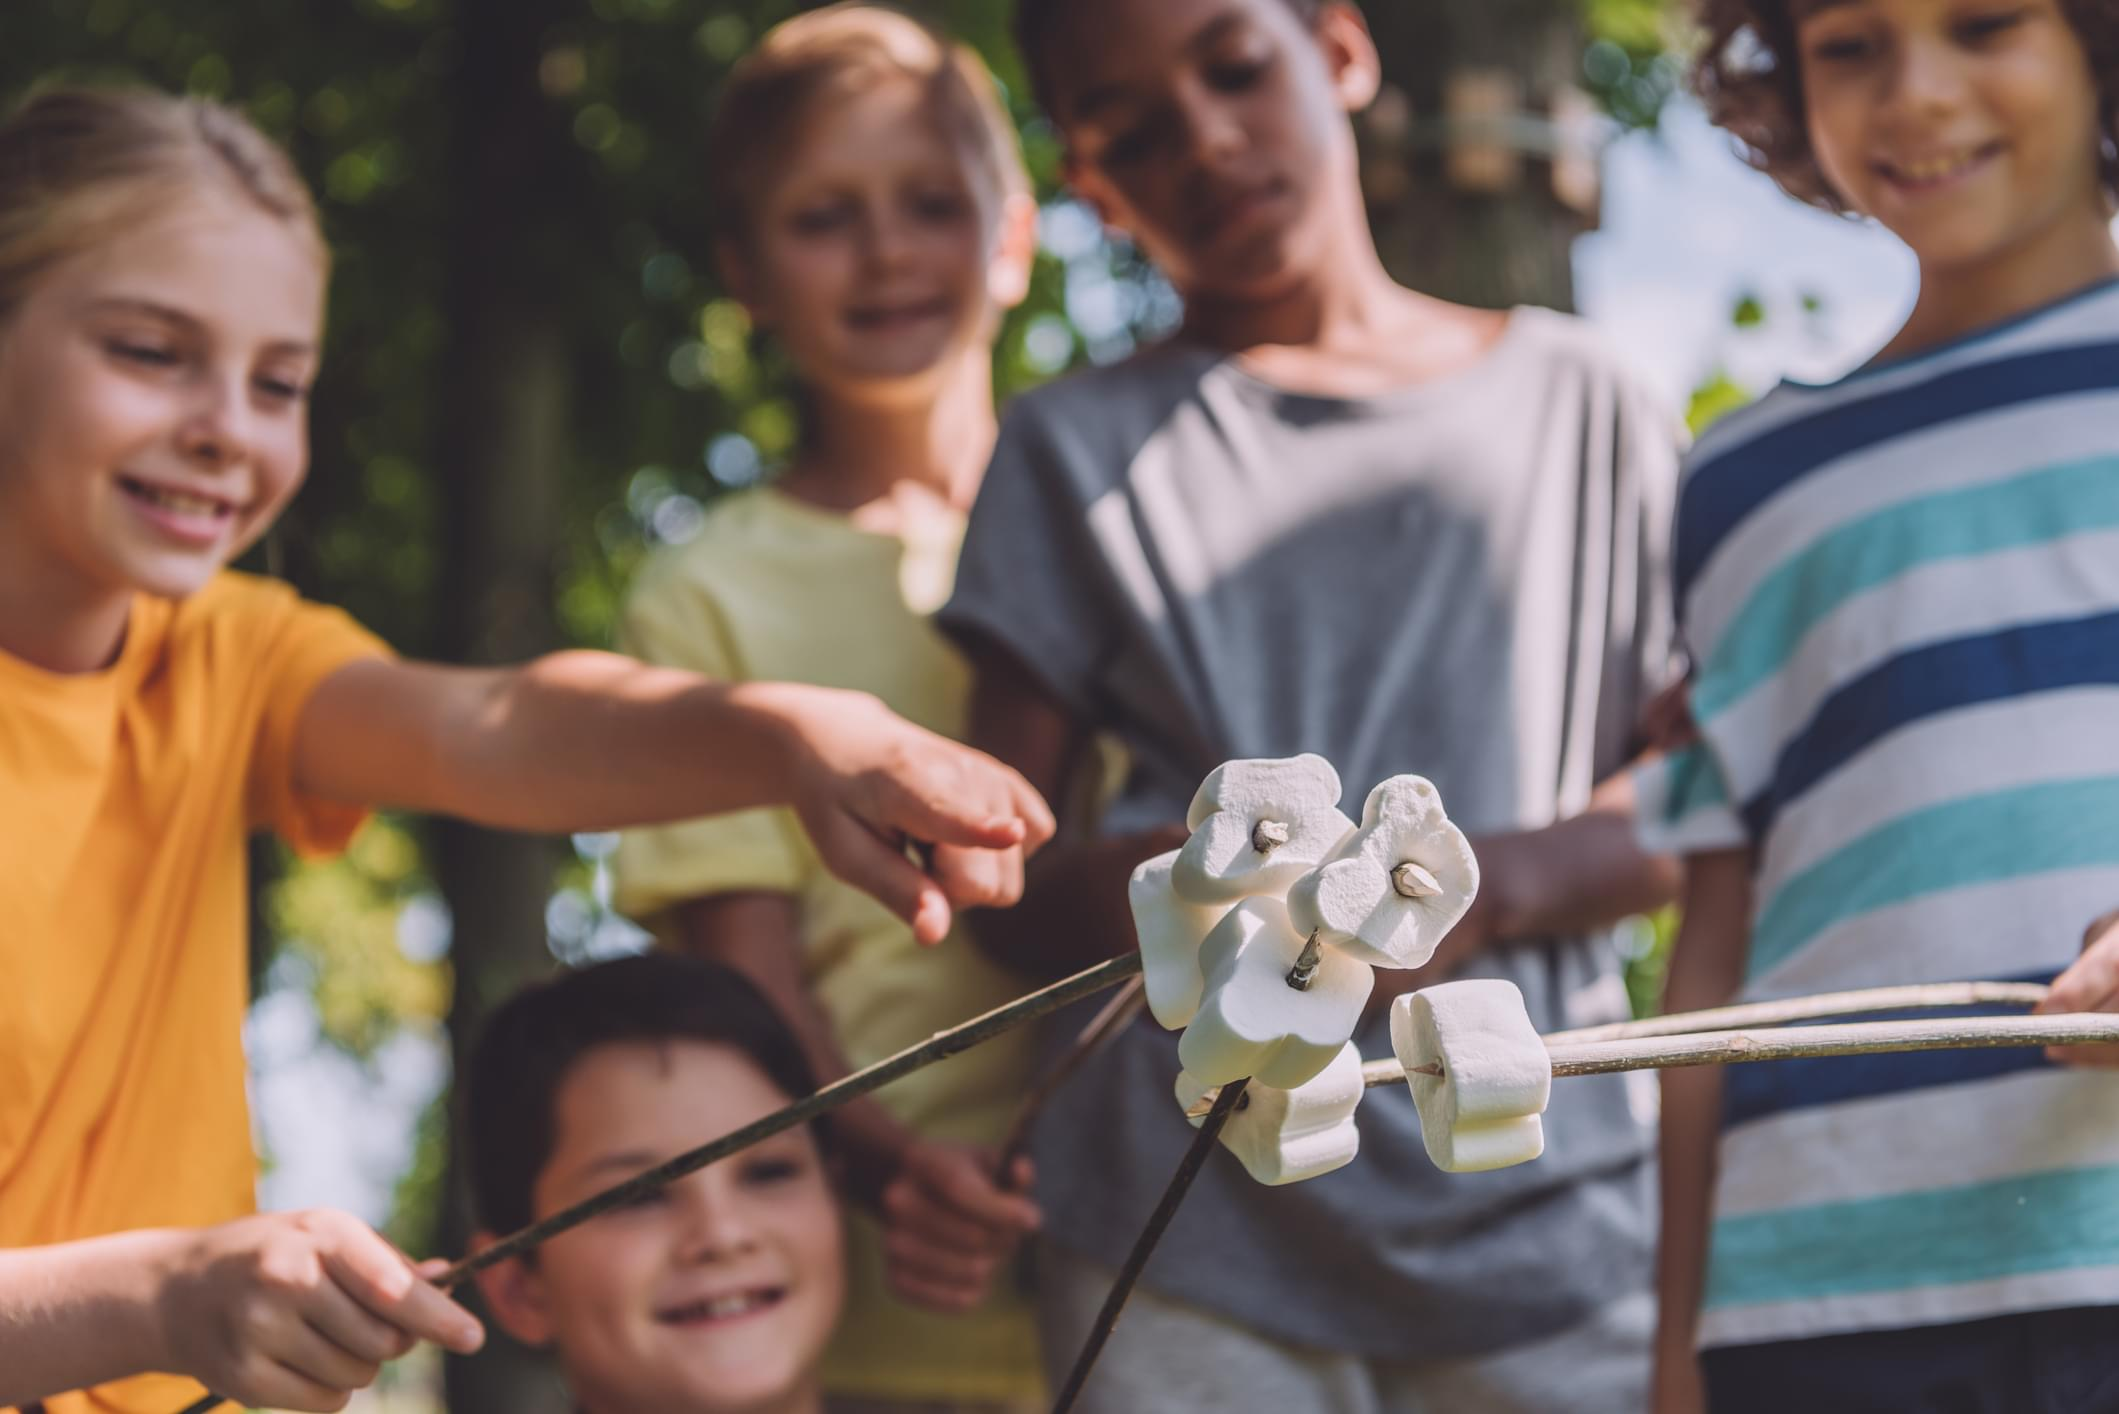 selective focus of kid pointing with finger at sweet marshmallows in sticks near multicultural boys